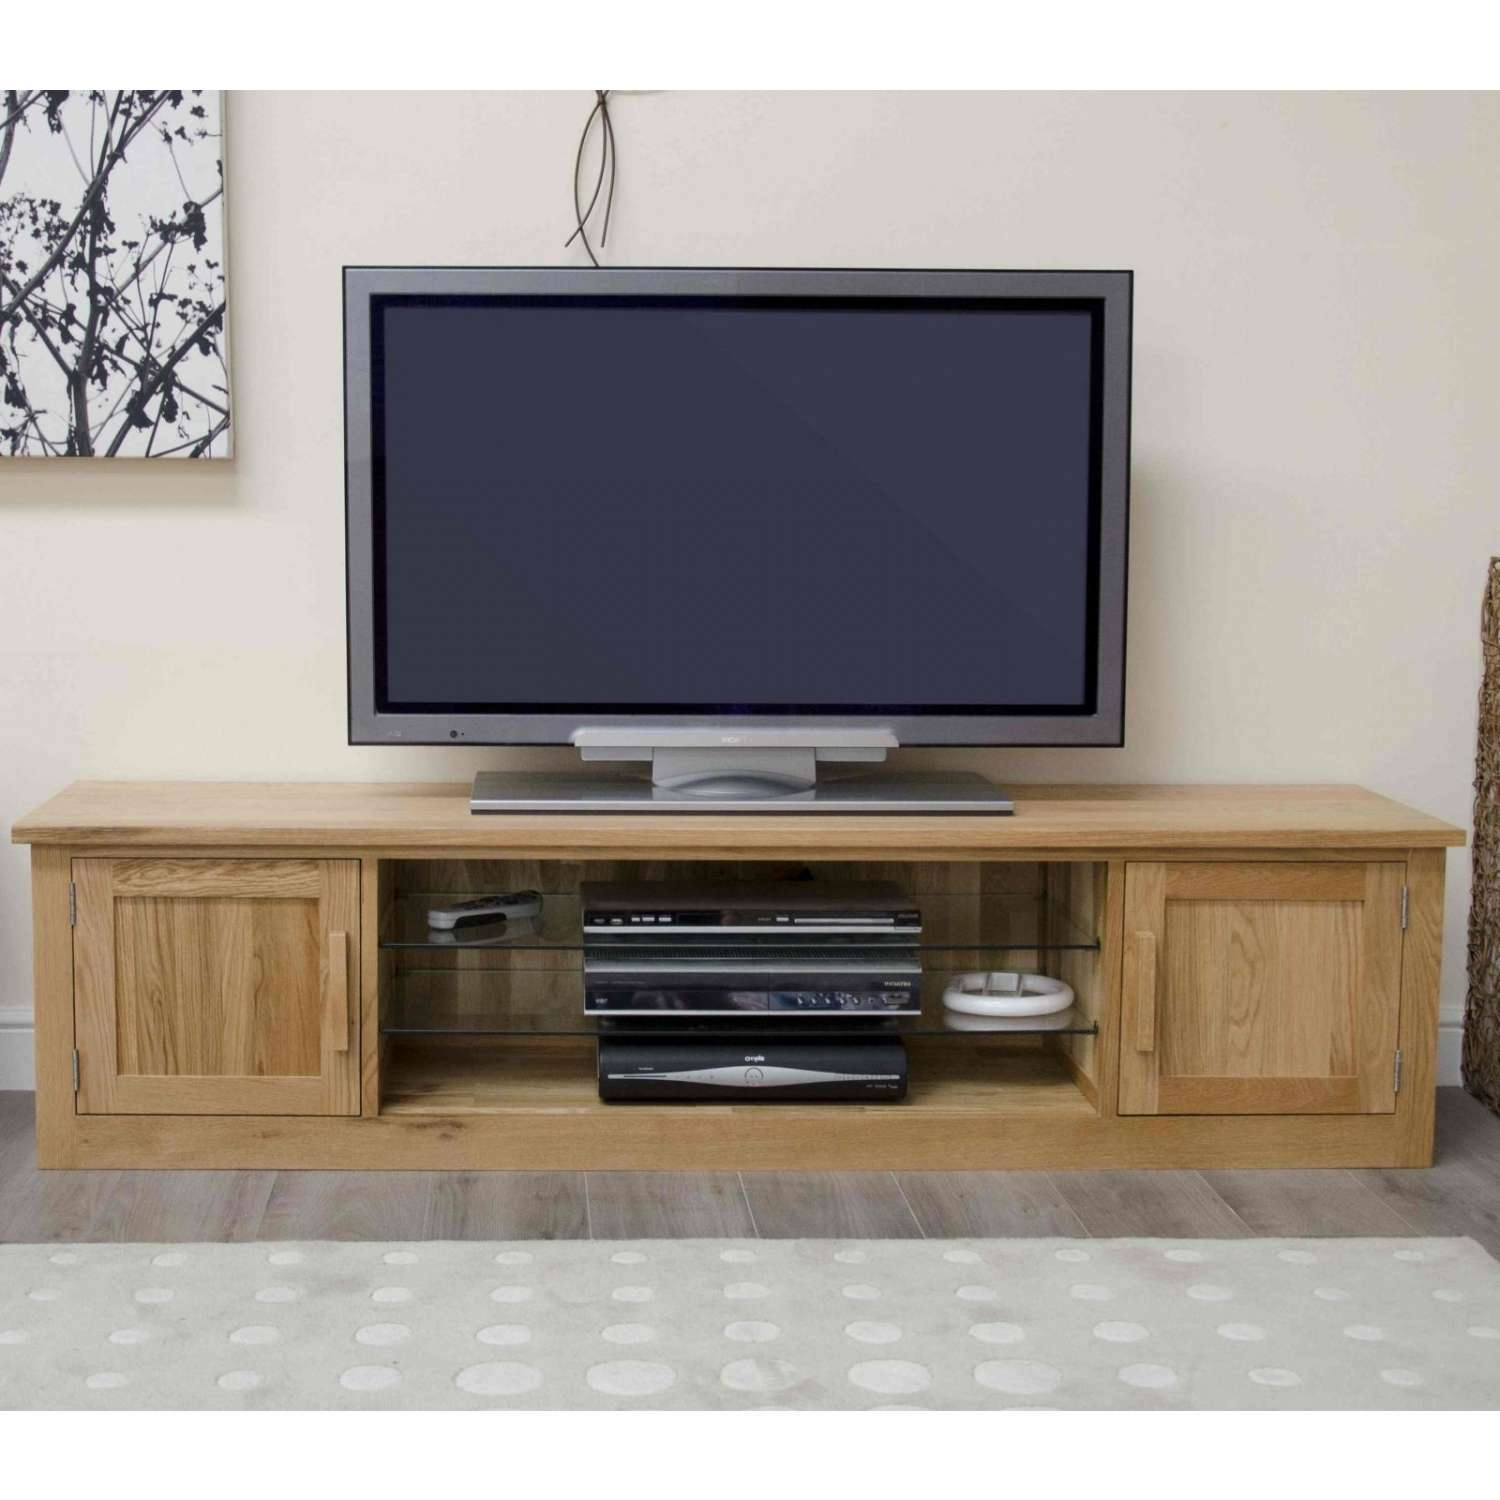 Arden Solid Oak Living Room Furniture Large Widescreen Tv Cabinet With Regard To Large Oak Tv Stands (View 8 of 15)